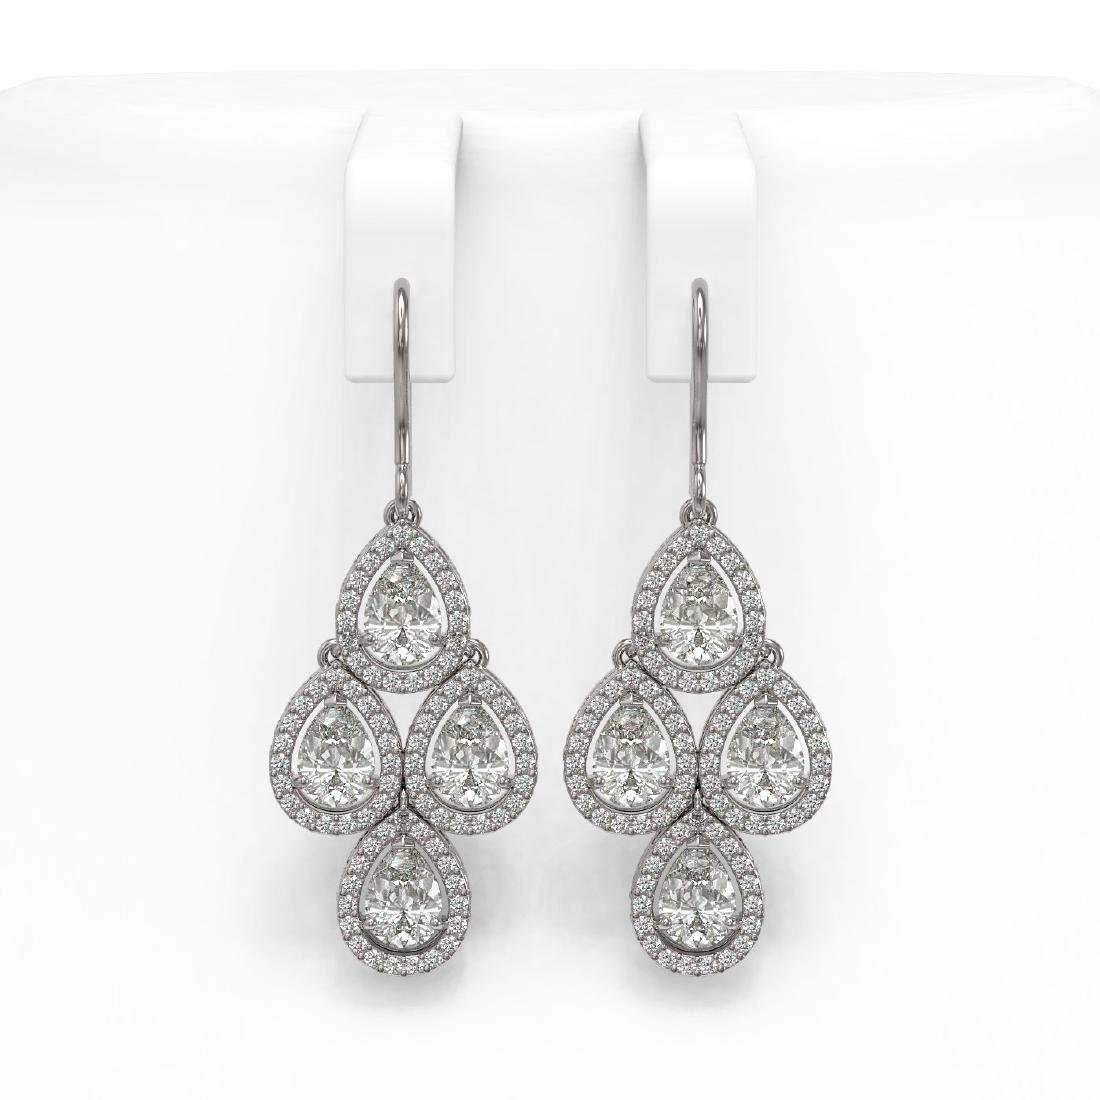 5.85 CTW Pear Diamond Designer Earrings 18K White Gold